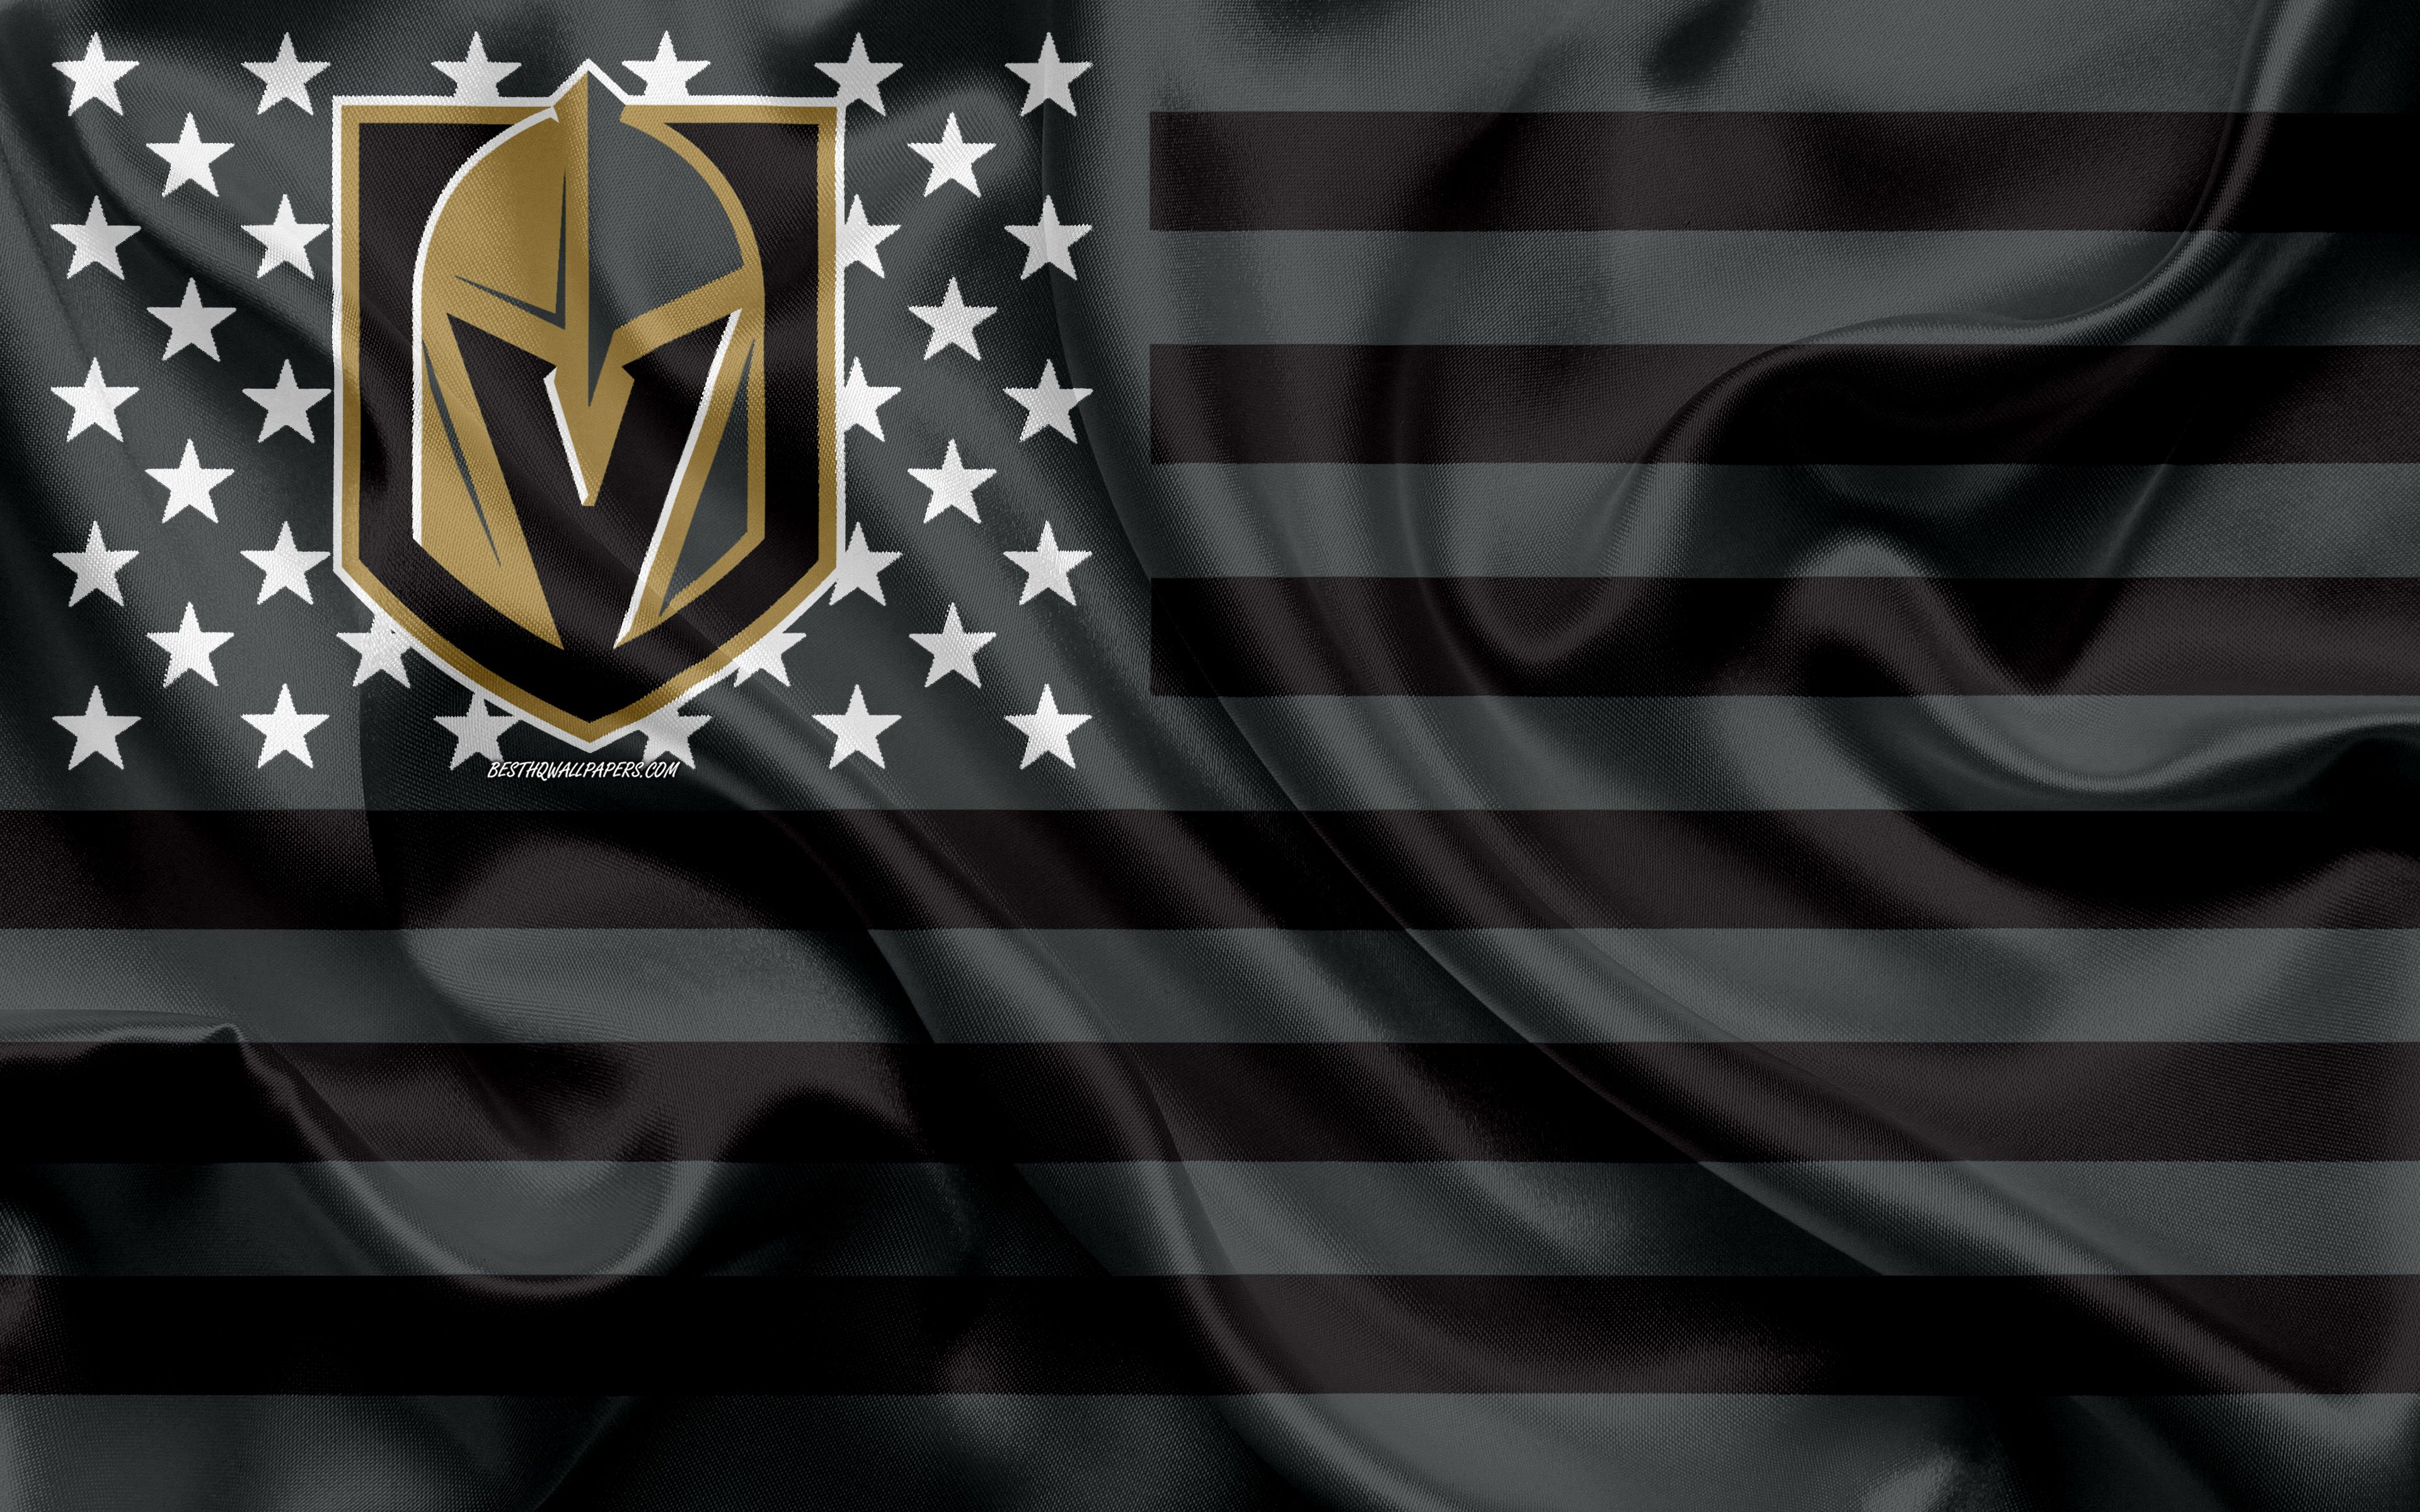 Golden Knights Wallpapers Top Free Golden Knights Backgrounds